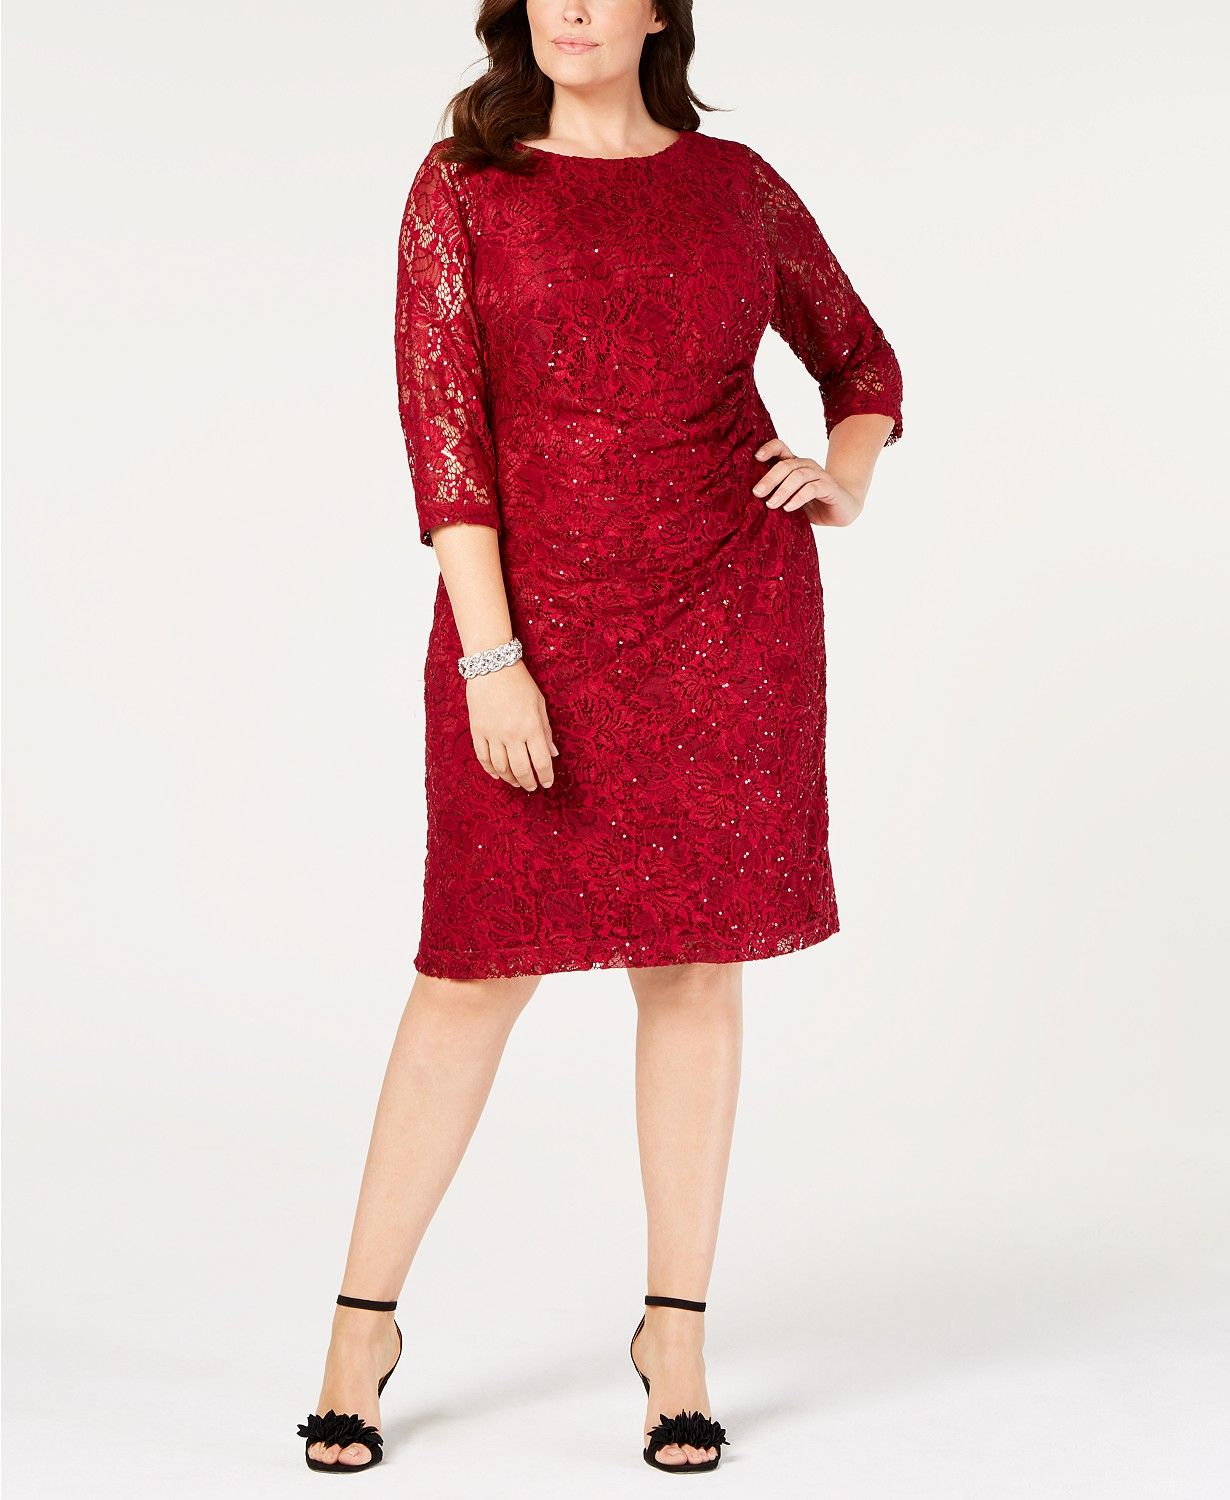 9974a56e5c8f Jessica Howard Plus Size Ruched Embellished Lace Dress - Dresses - Women -  Macy's